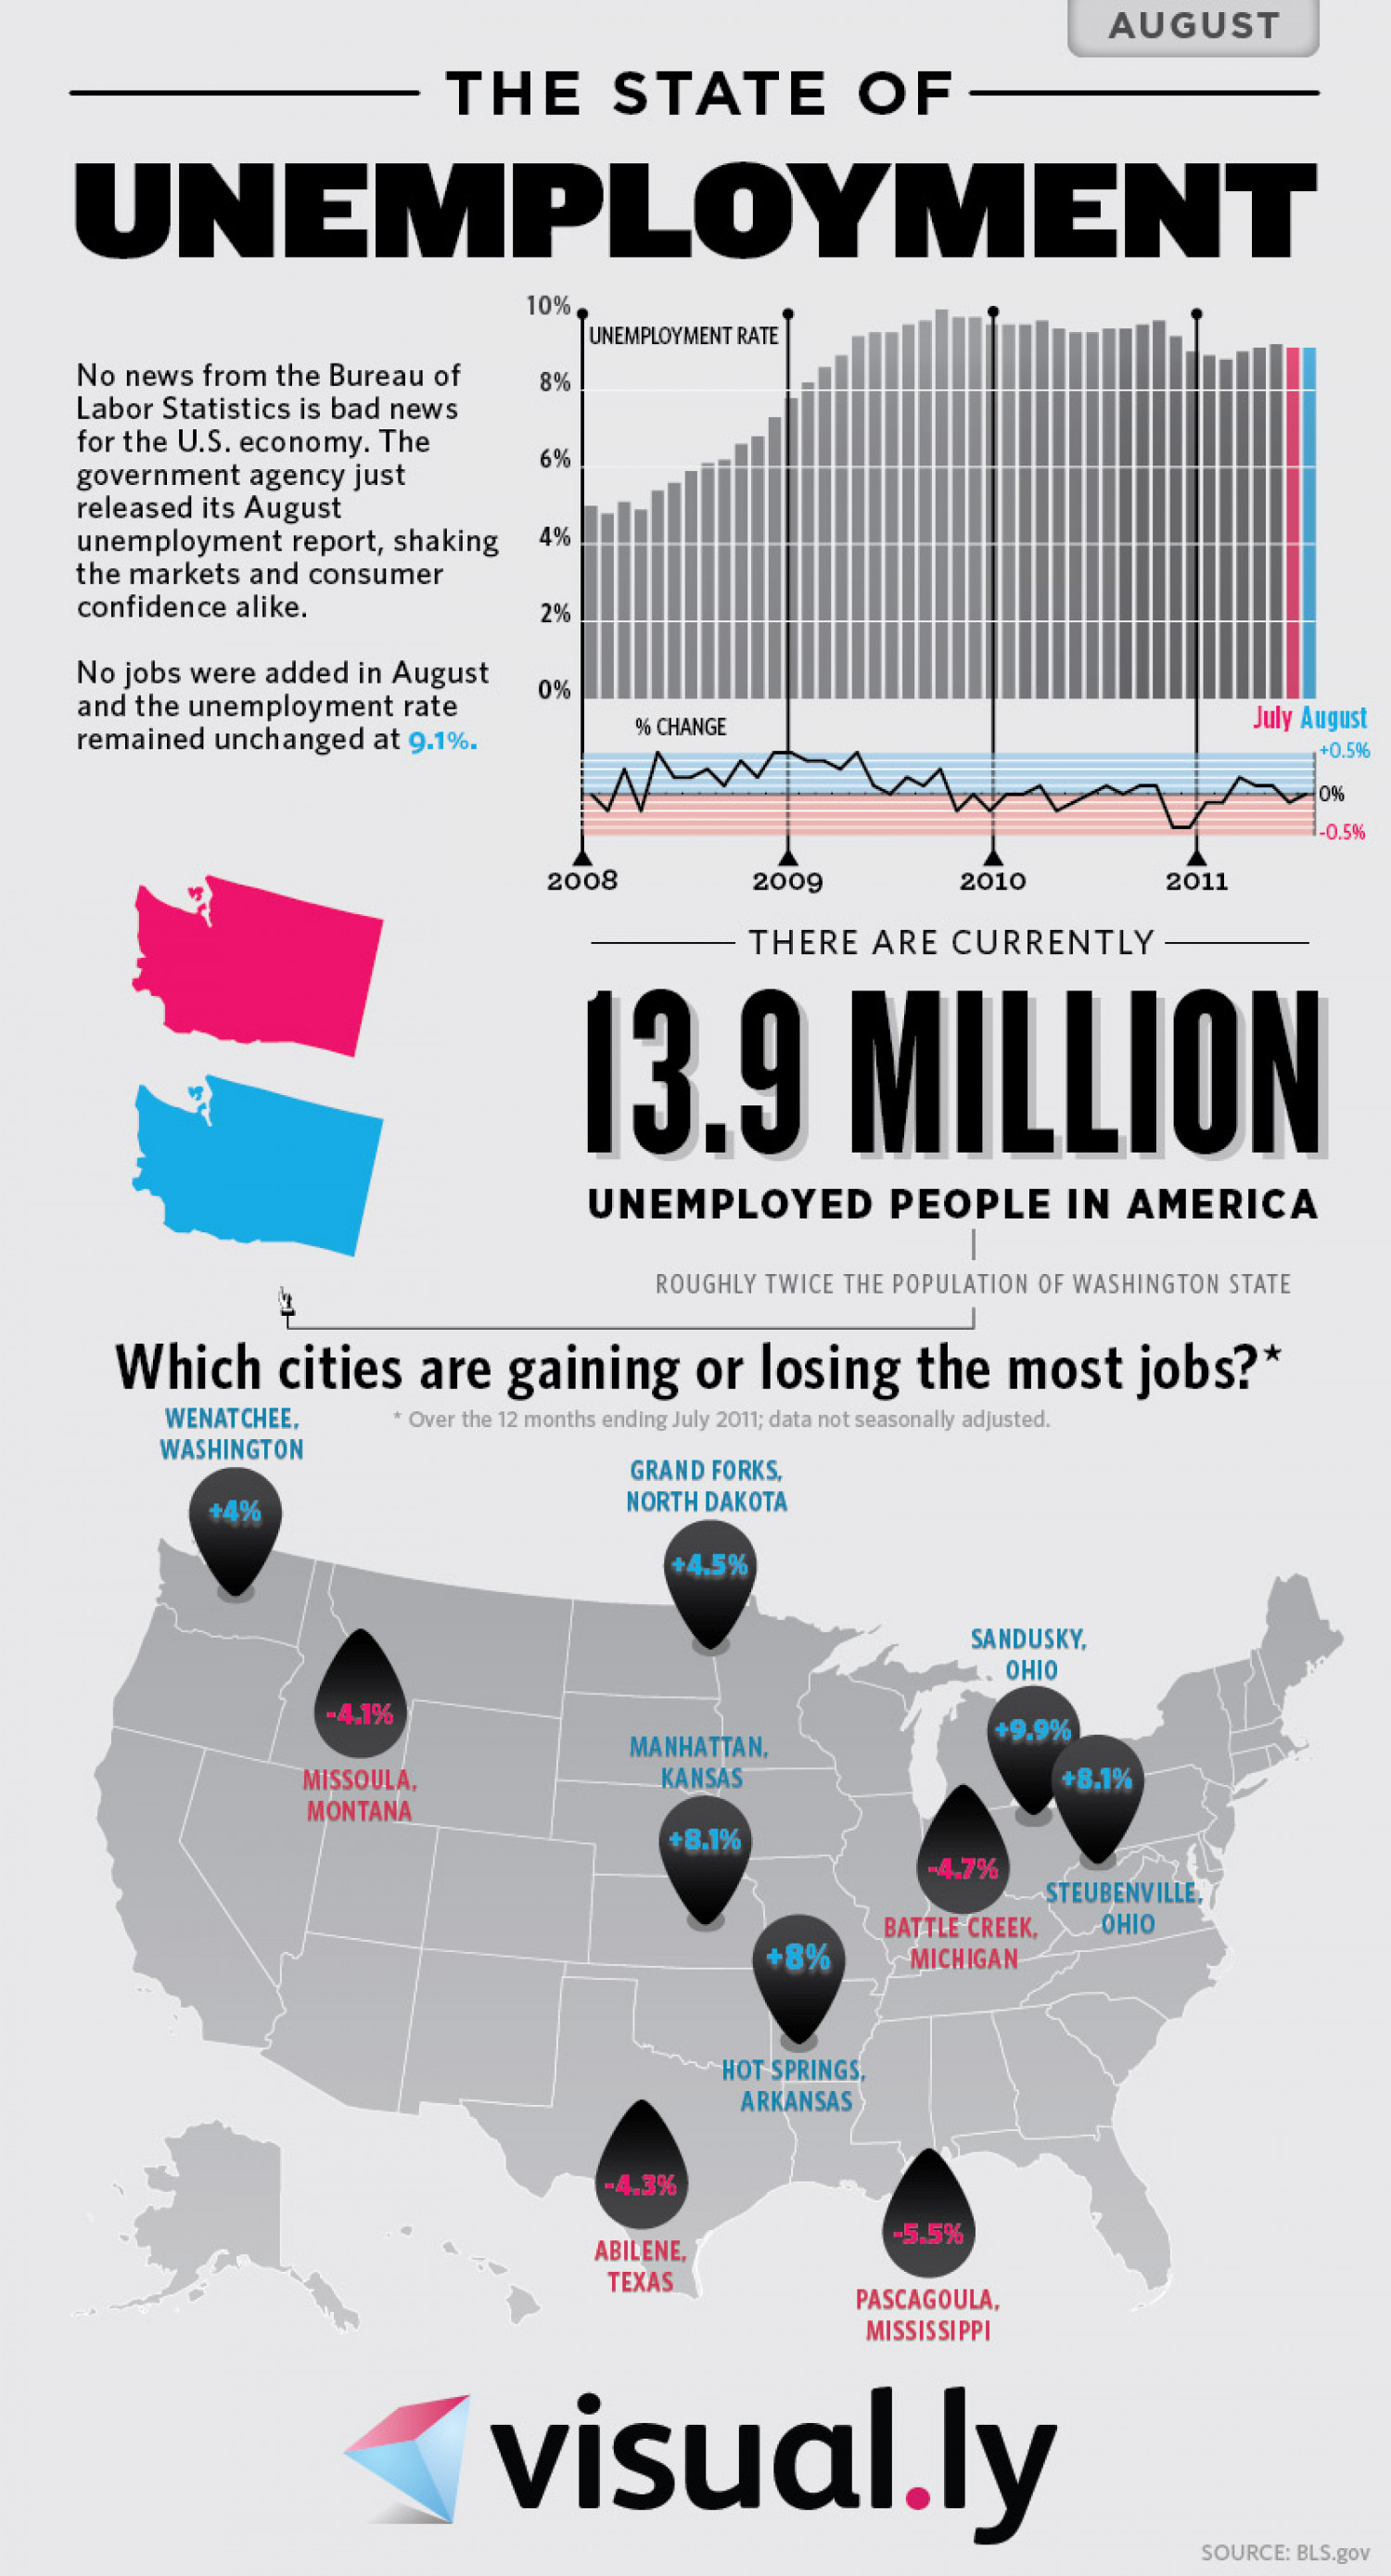 The State of Unemployment - August 2011 Infographic